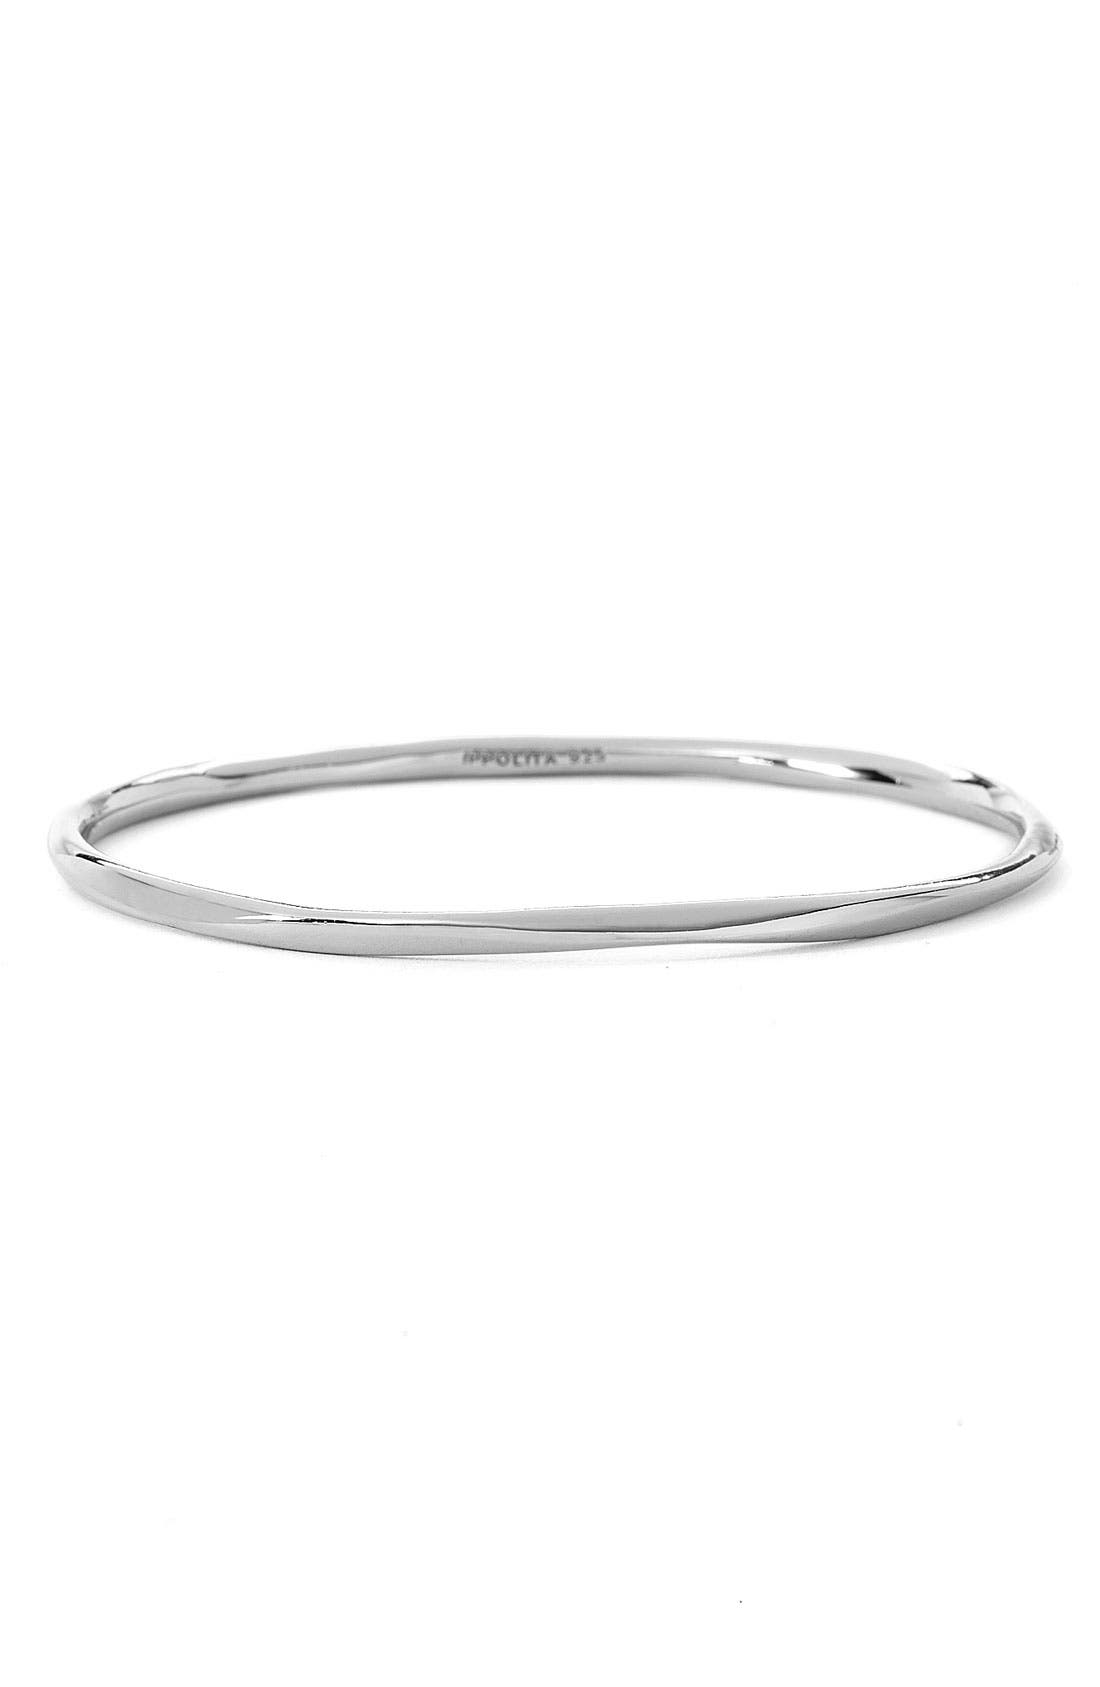 Alternate Image 1 Selected - Ippolita 'Shiny Squiggle' Sterling Silver Bangle